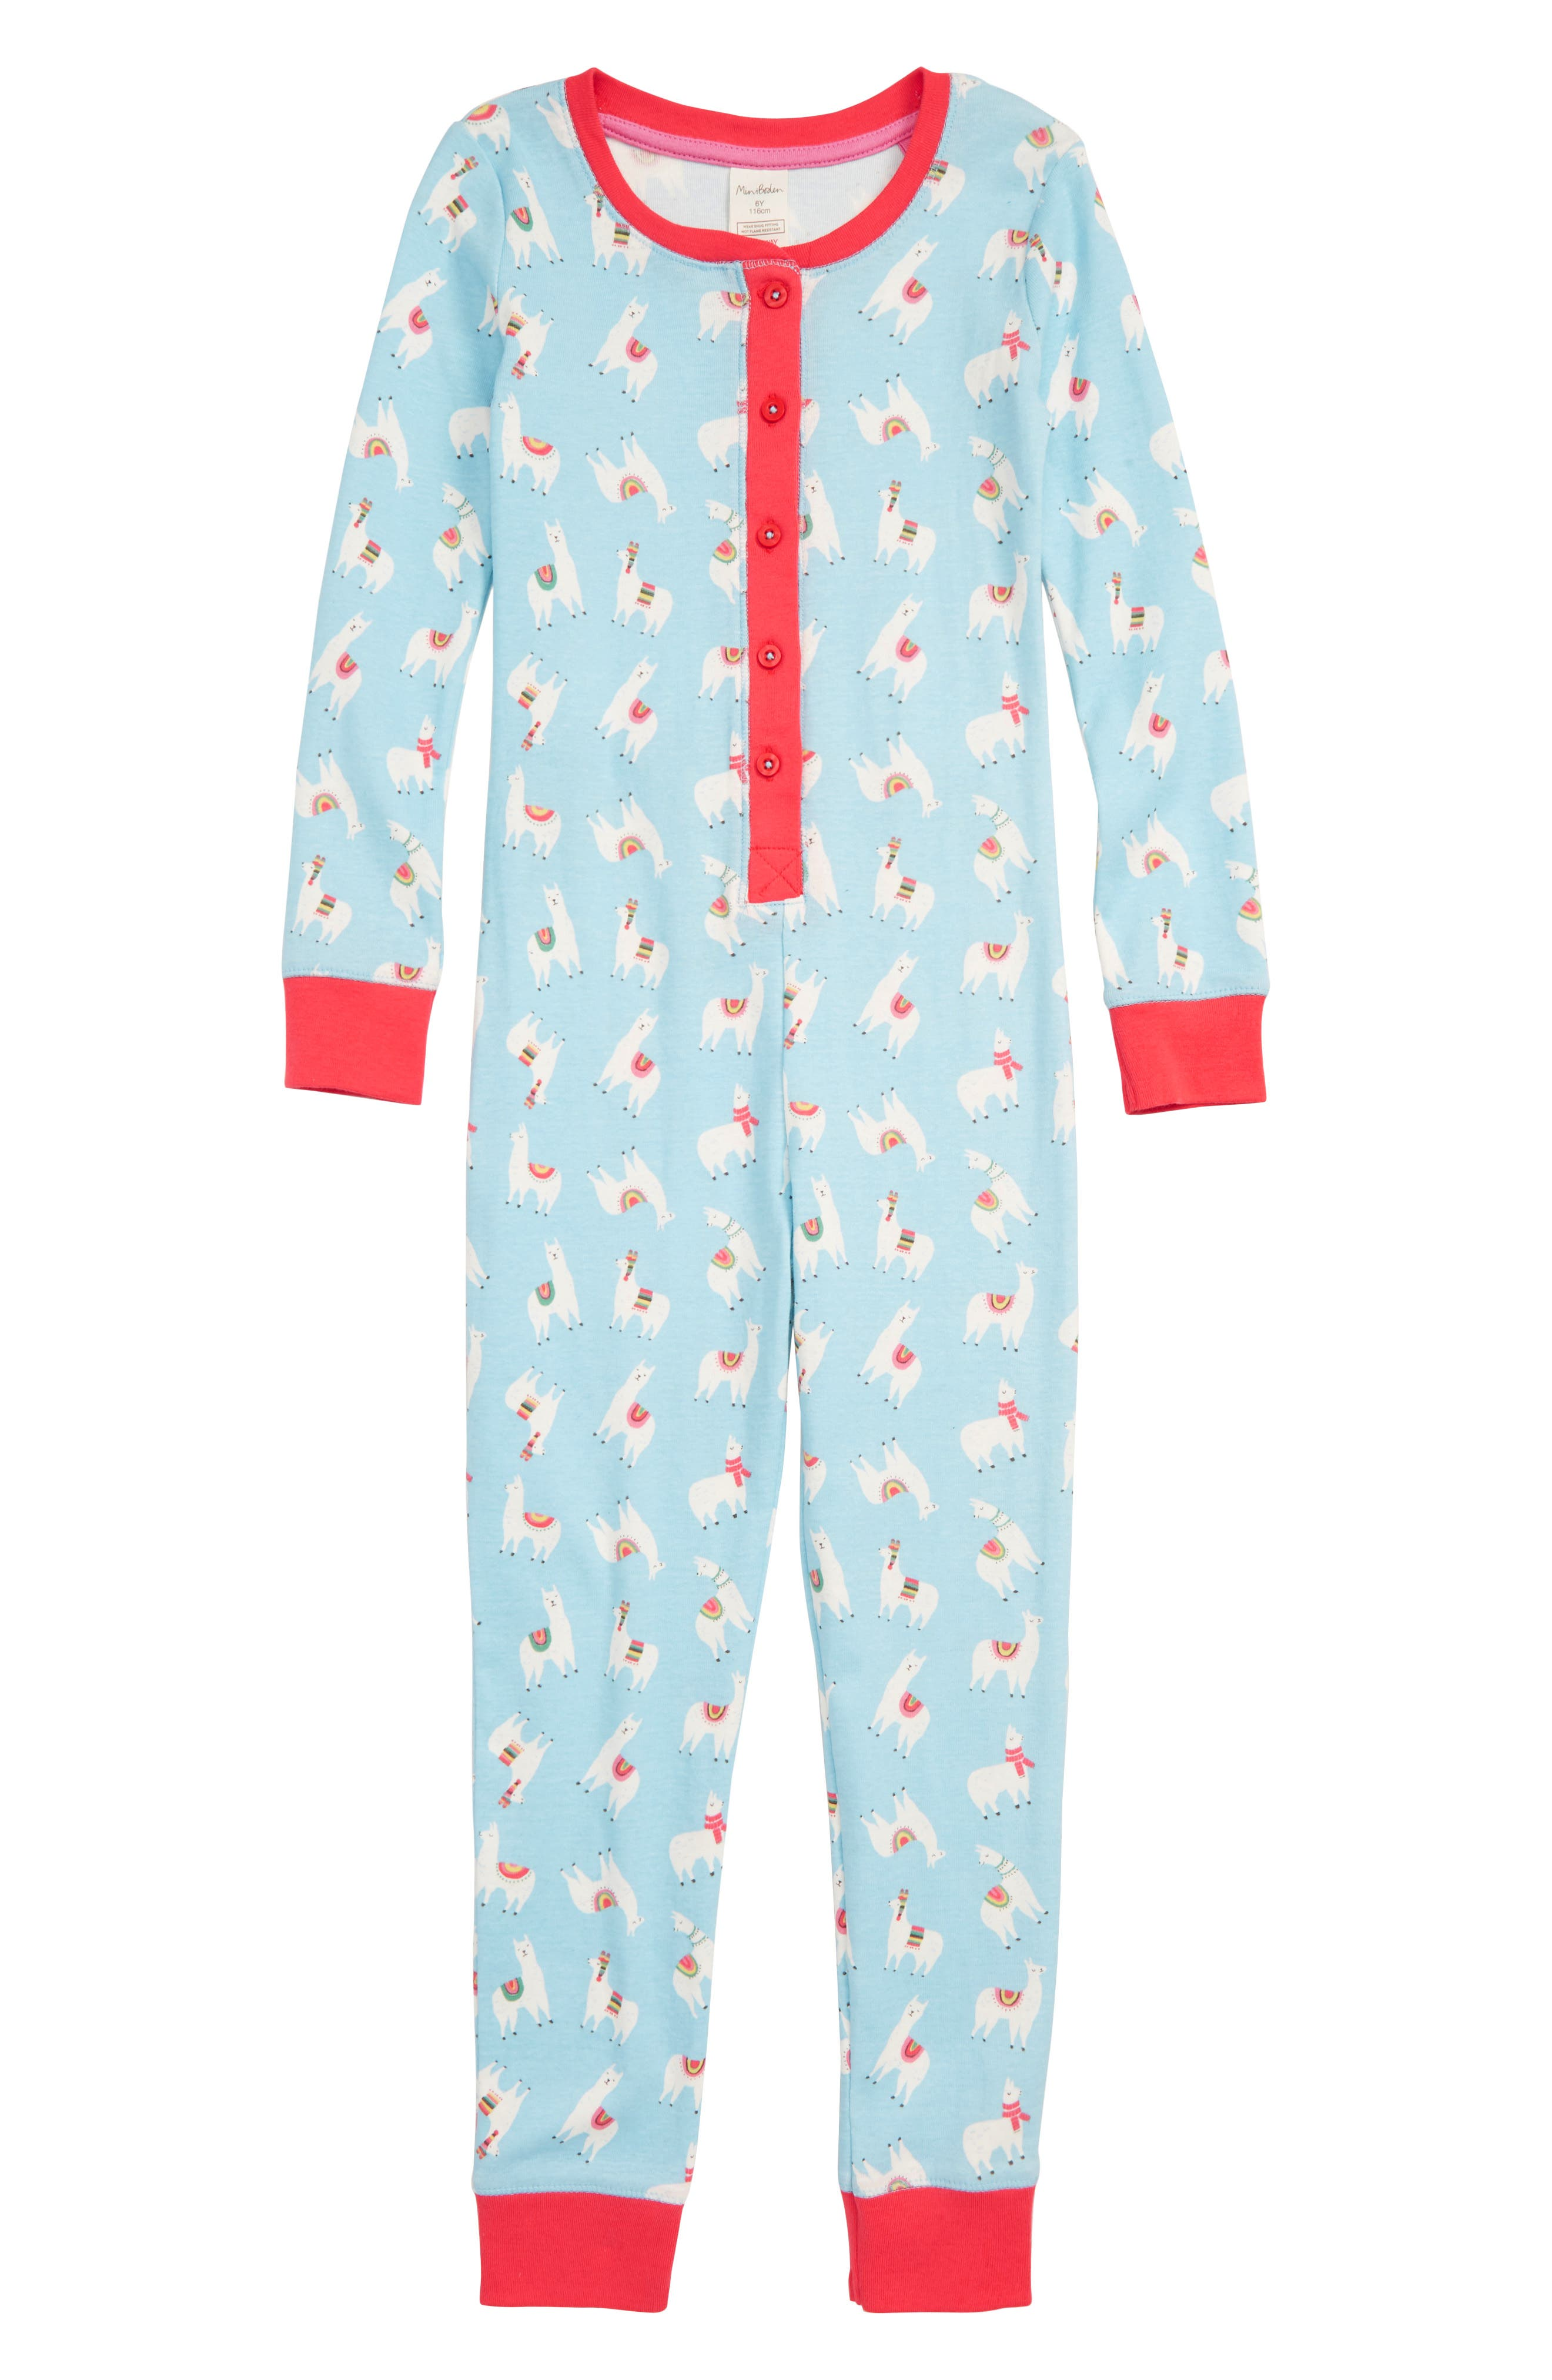 Fitted Cosy All in One Pajamas,                         Main,                         color, BLU ICE BLUE LLAMAS